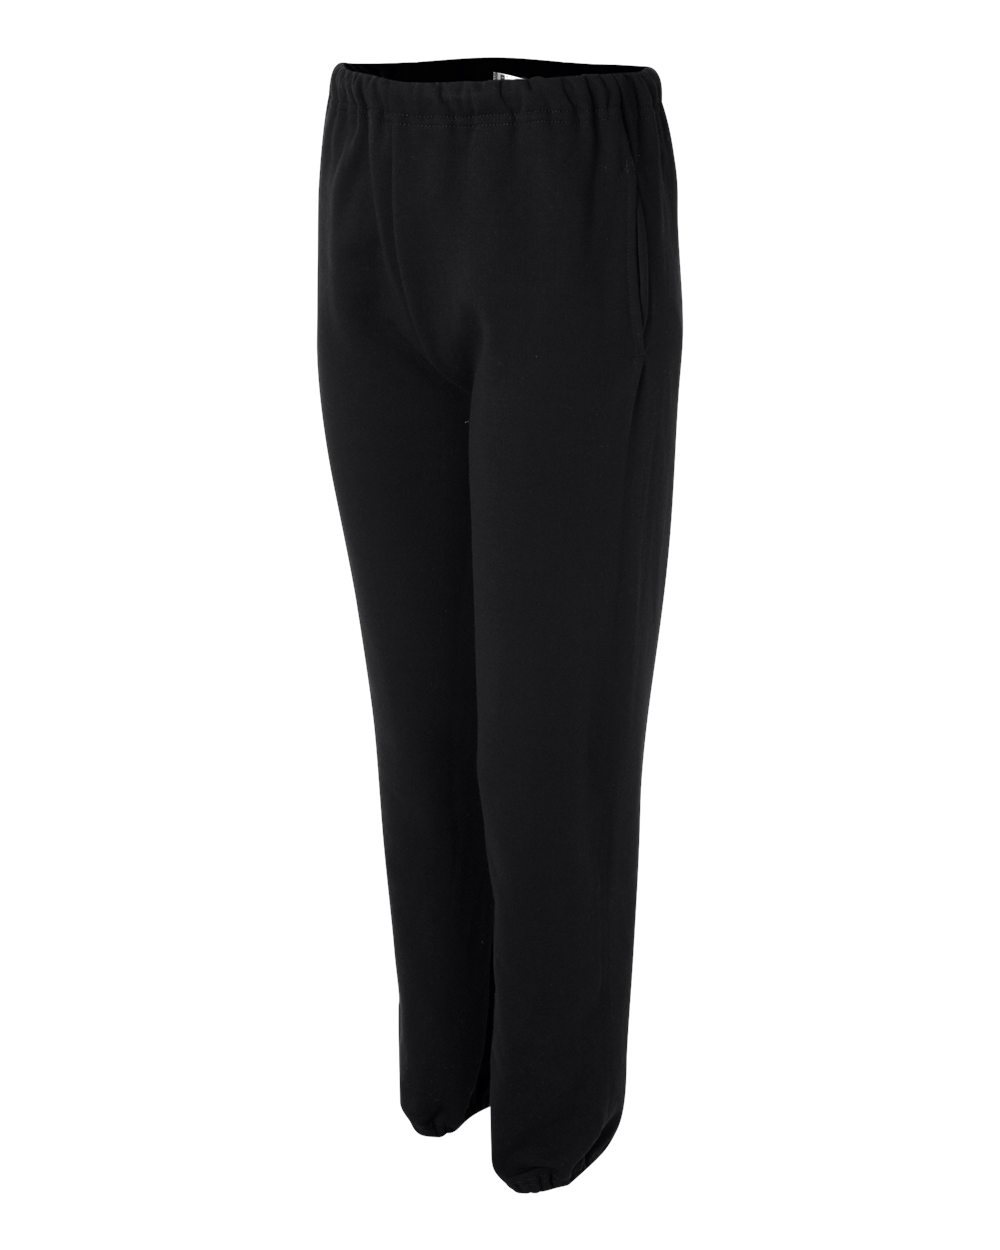 JERZEES 4950BR - Youth Sweatpant With Pockets